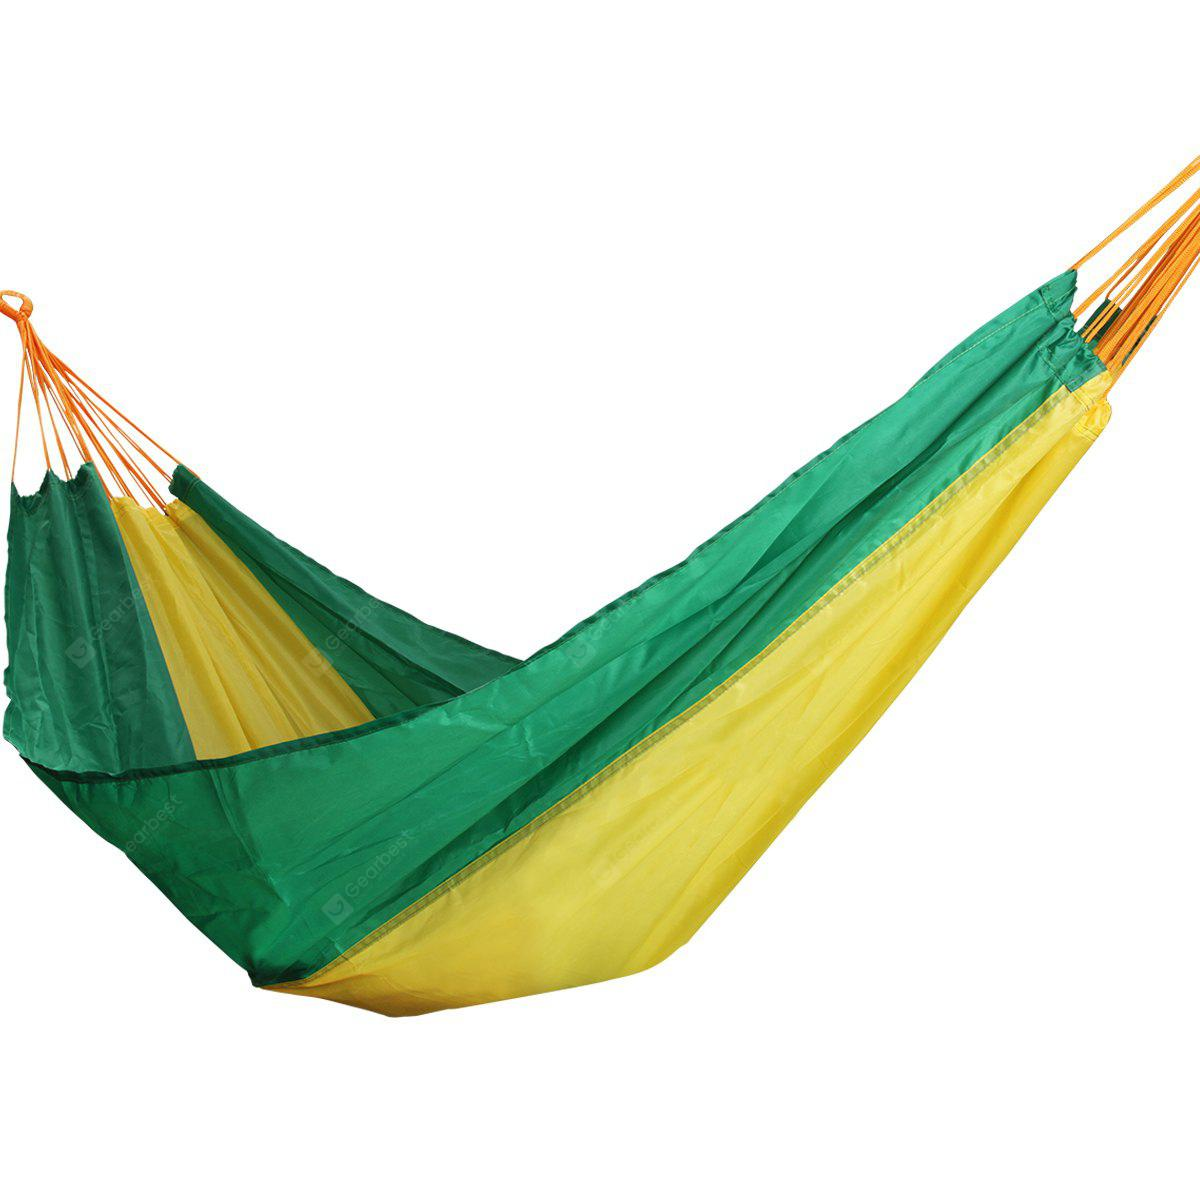 HWDC - 21 Double Outdoor Hammock Swing Bed